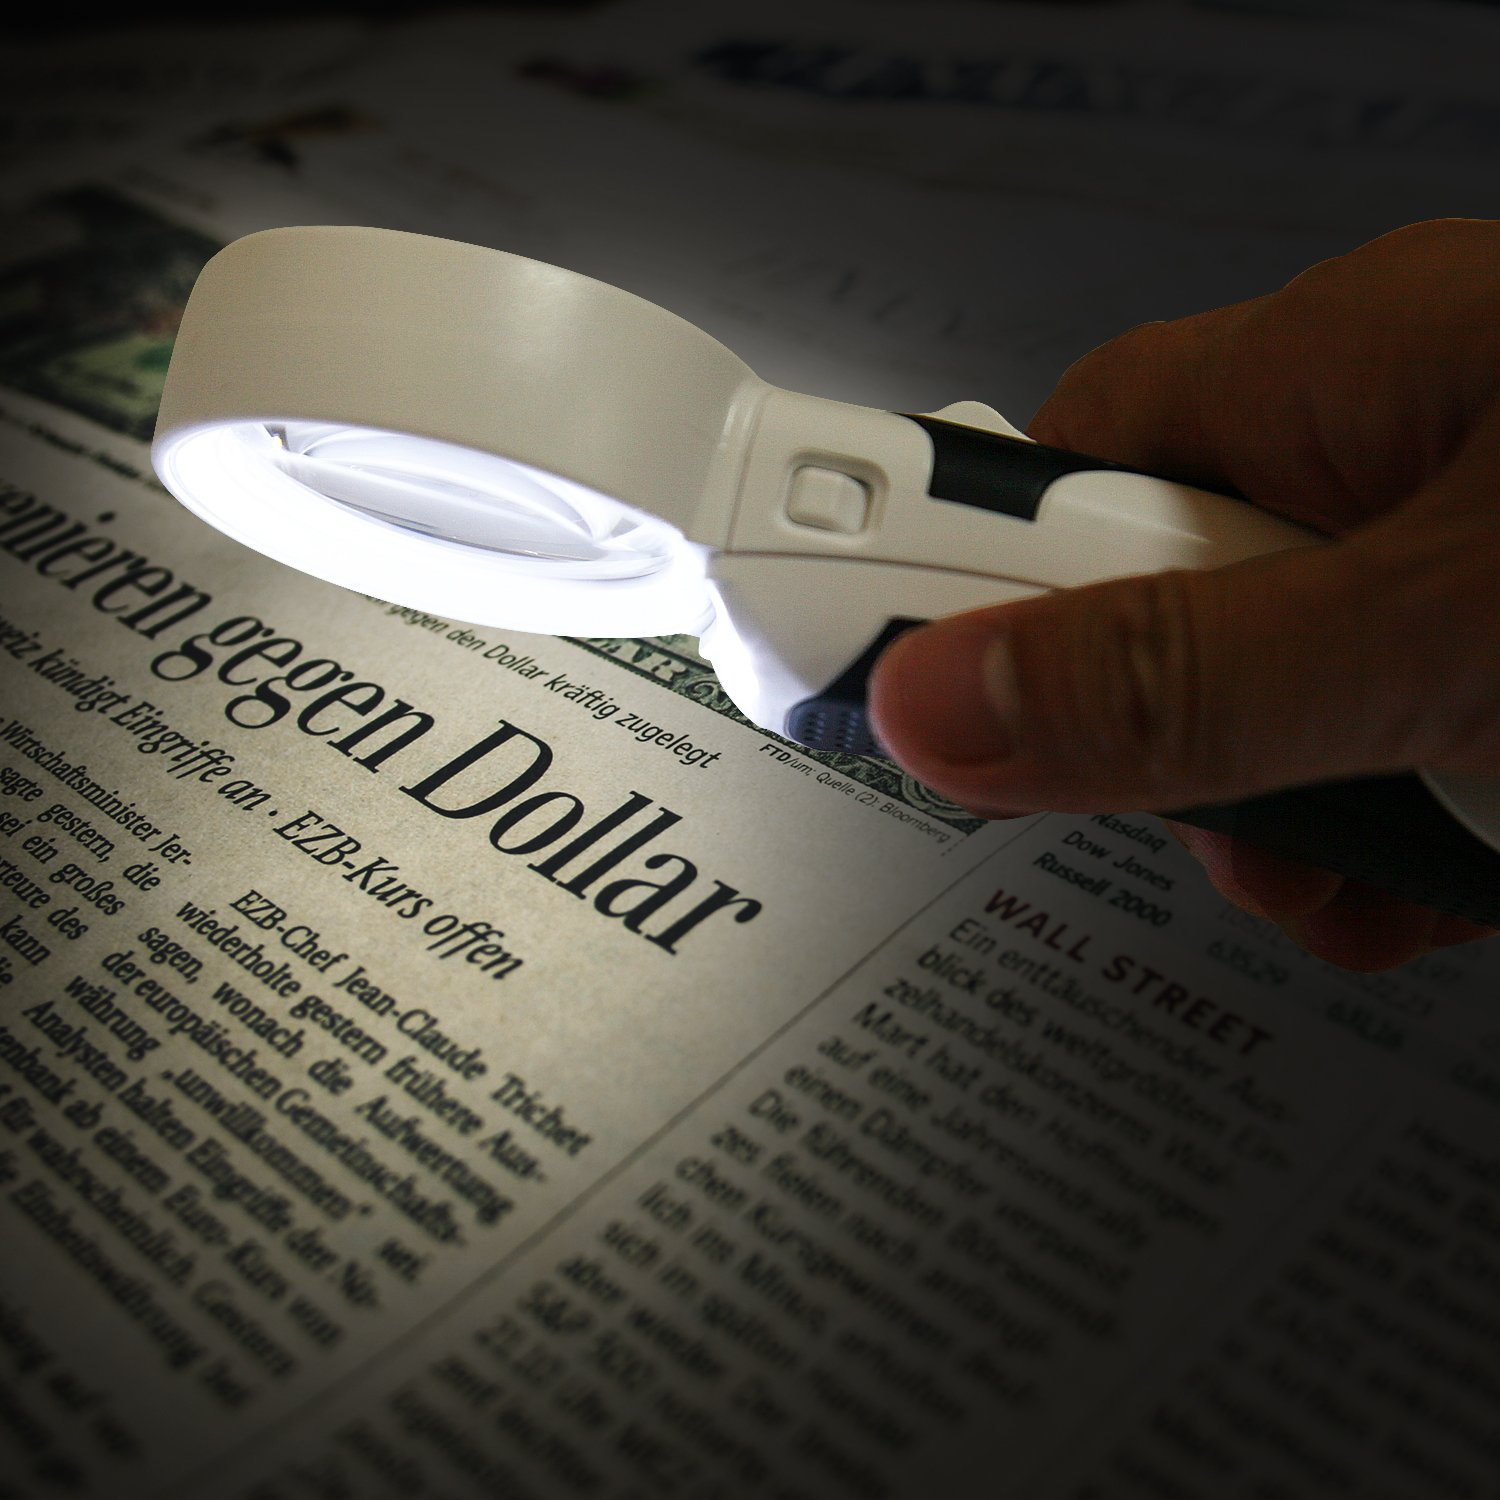 Magnifying Glass with Bright LED Lights 10X 5X Illuminated 2 Lens Set,Portable Handheld Magnifier Optical Lenses for Reading,Macular Degeneration,Practical Gift for Parents and Elders … by ONETKM (Image #4)